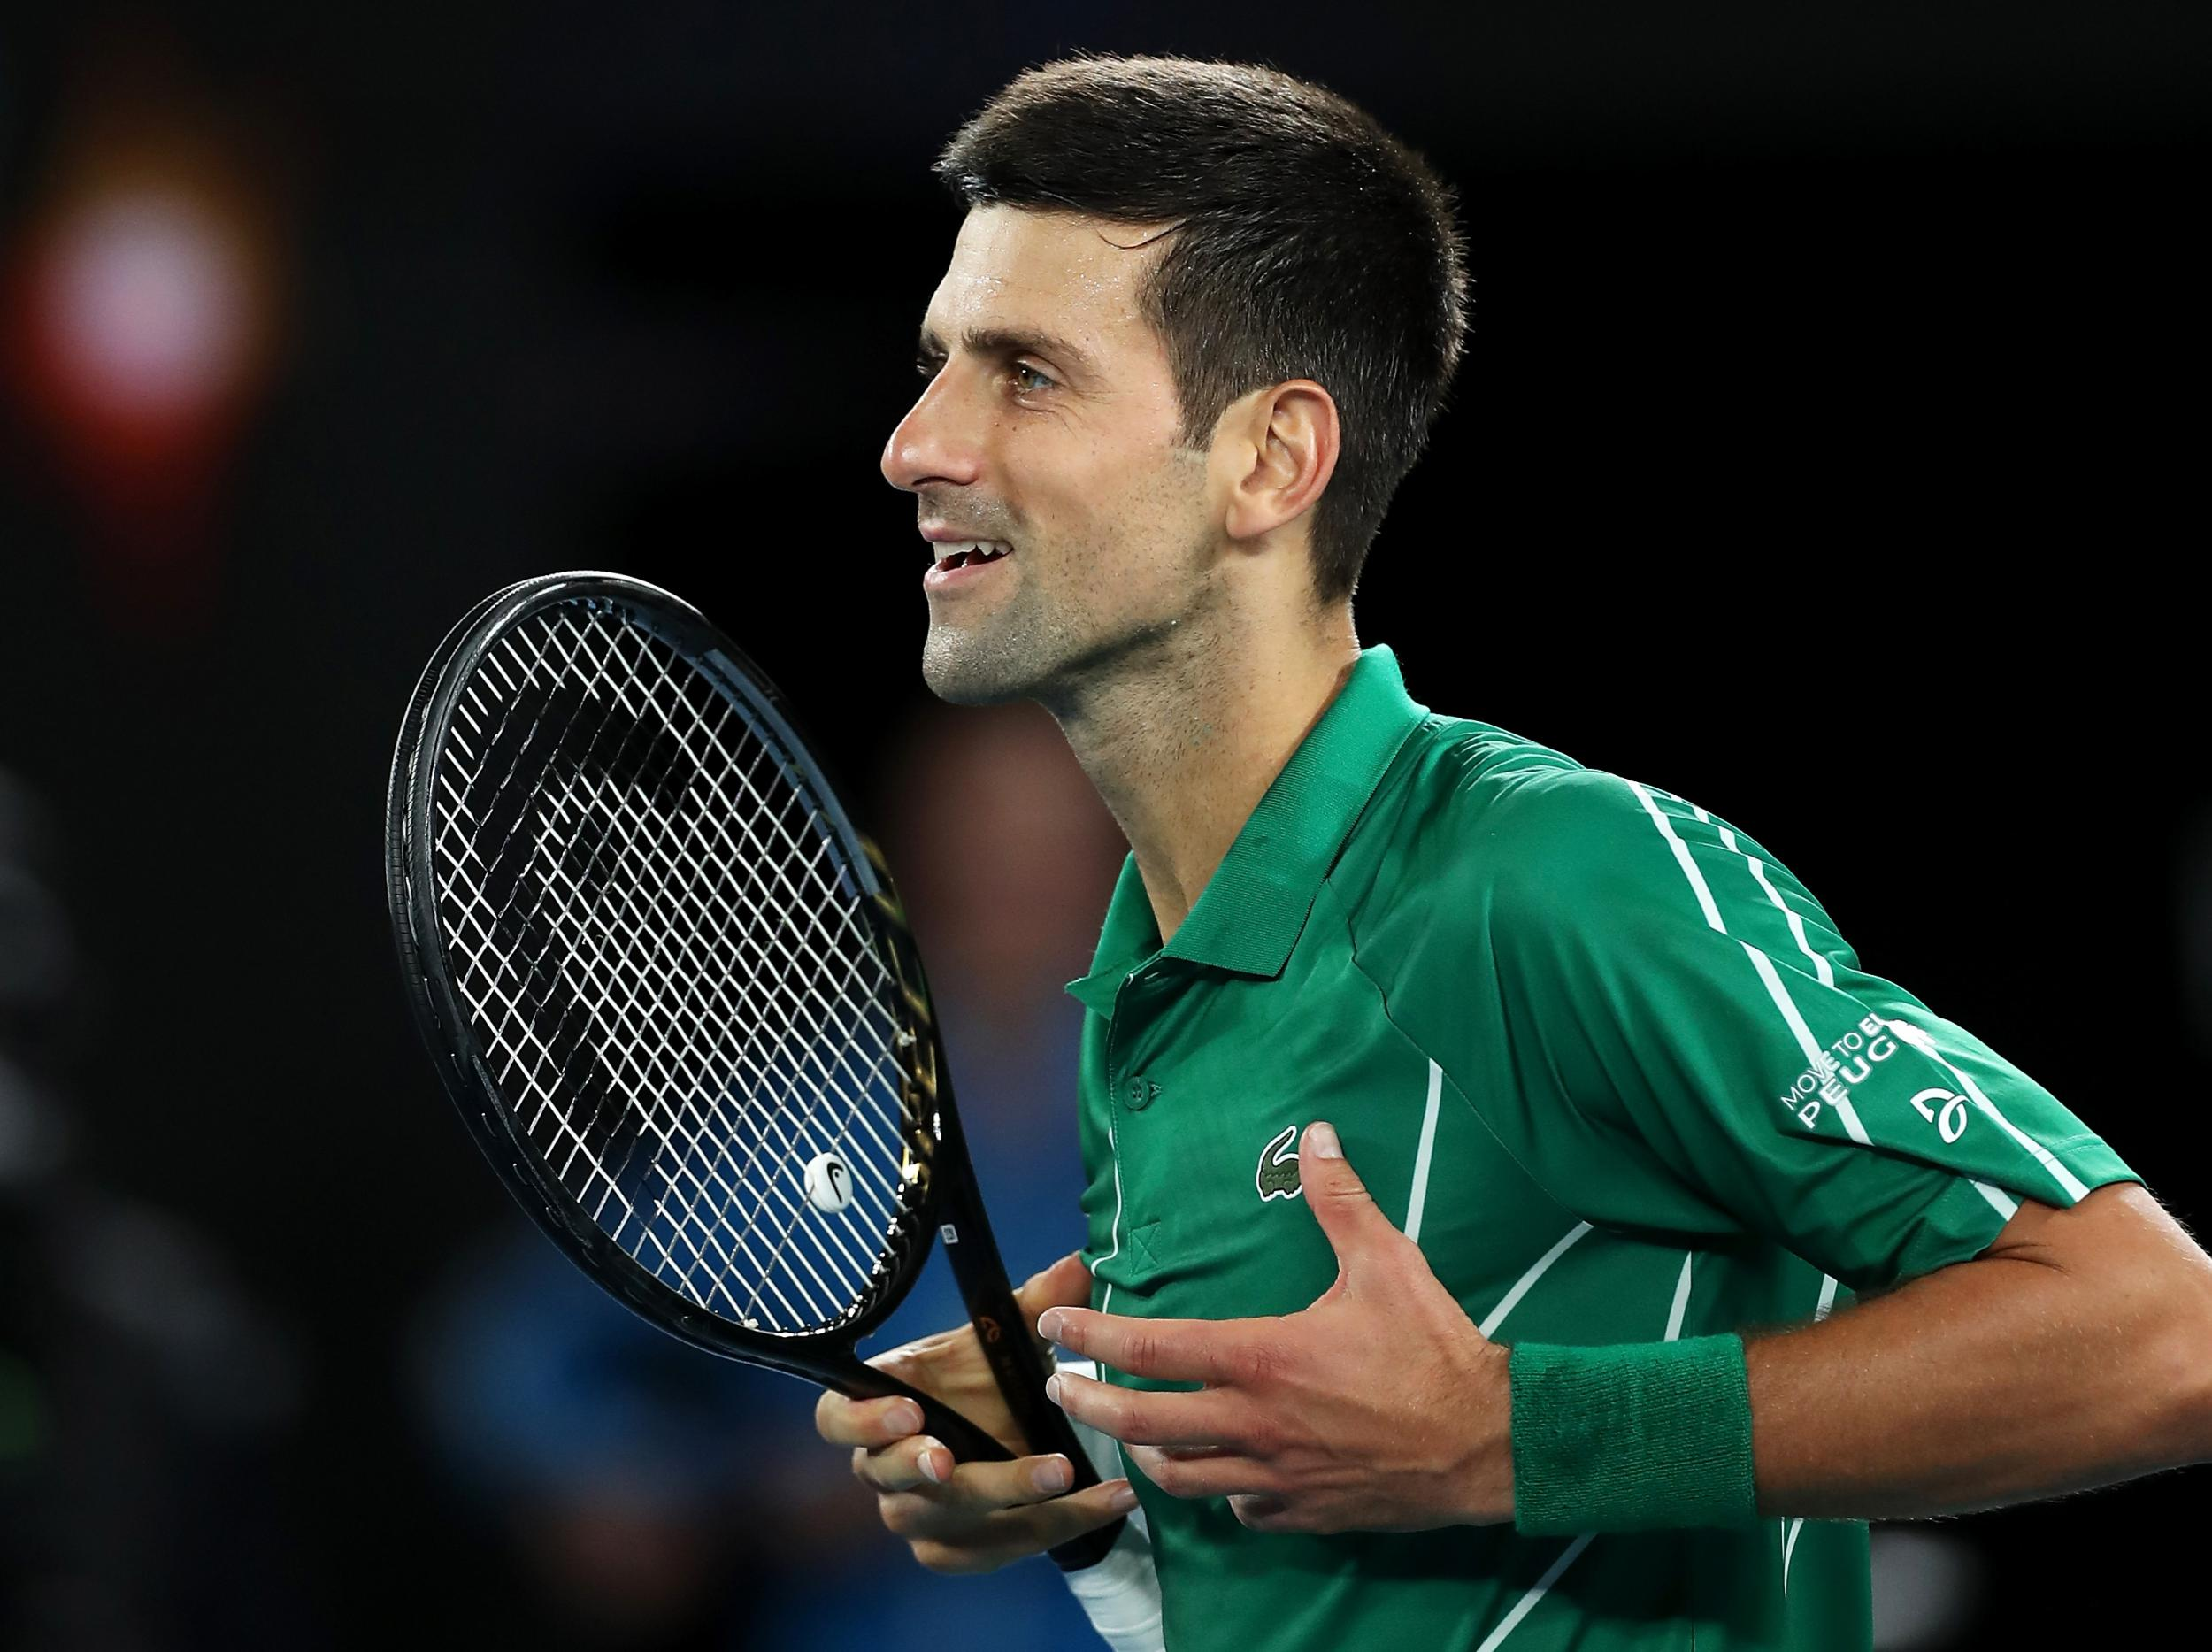 Australian Open 2020 Novak Djokovic makes stuttering start but 2500x1867